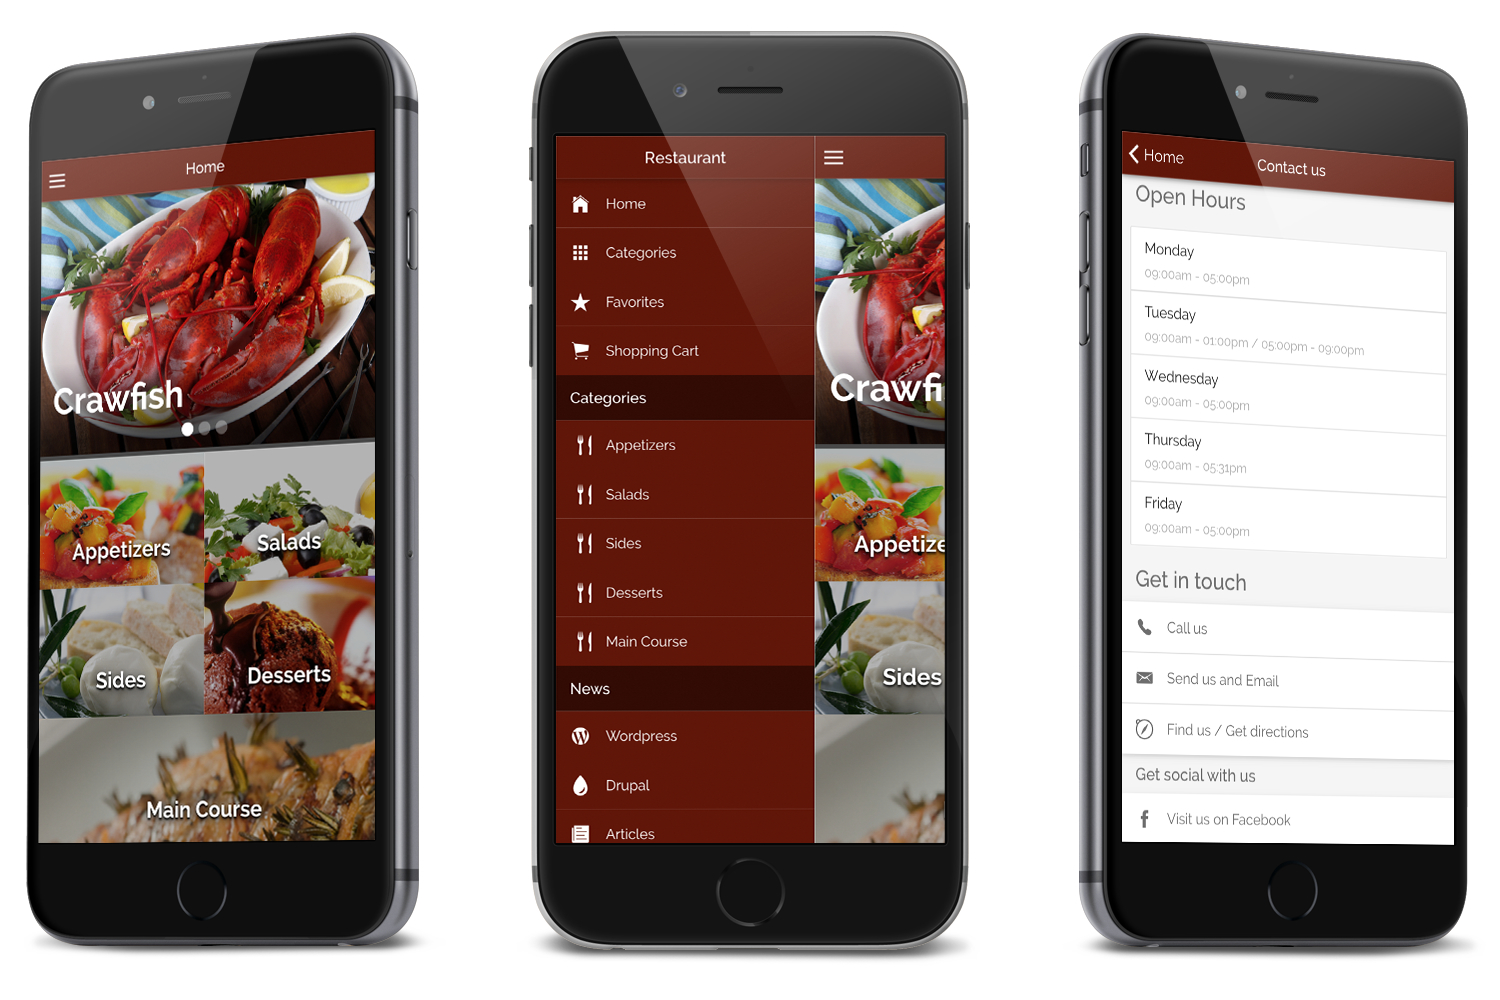 Restaurant Ionic Classy- Full Application with Firebase backend - 5